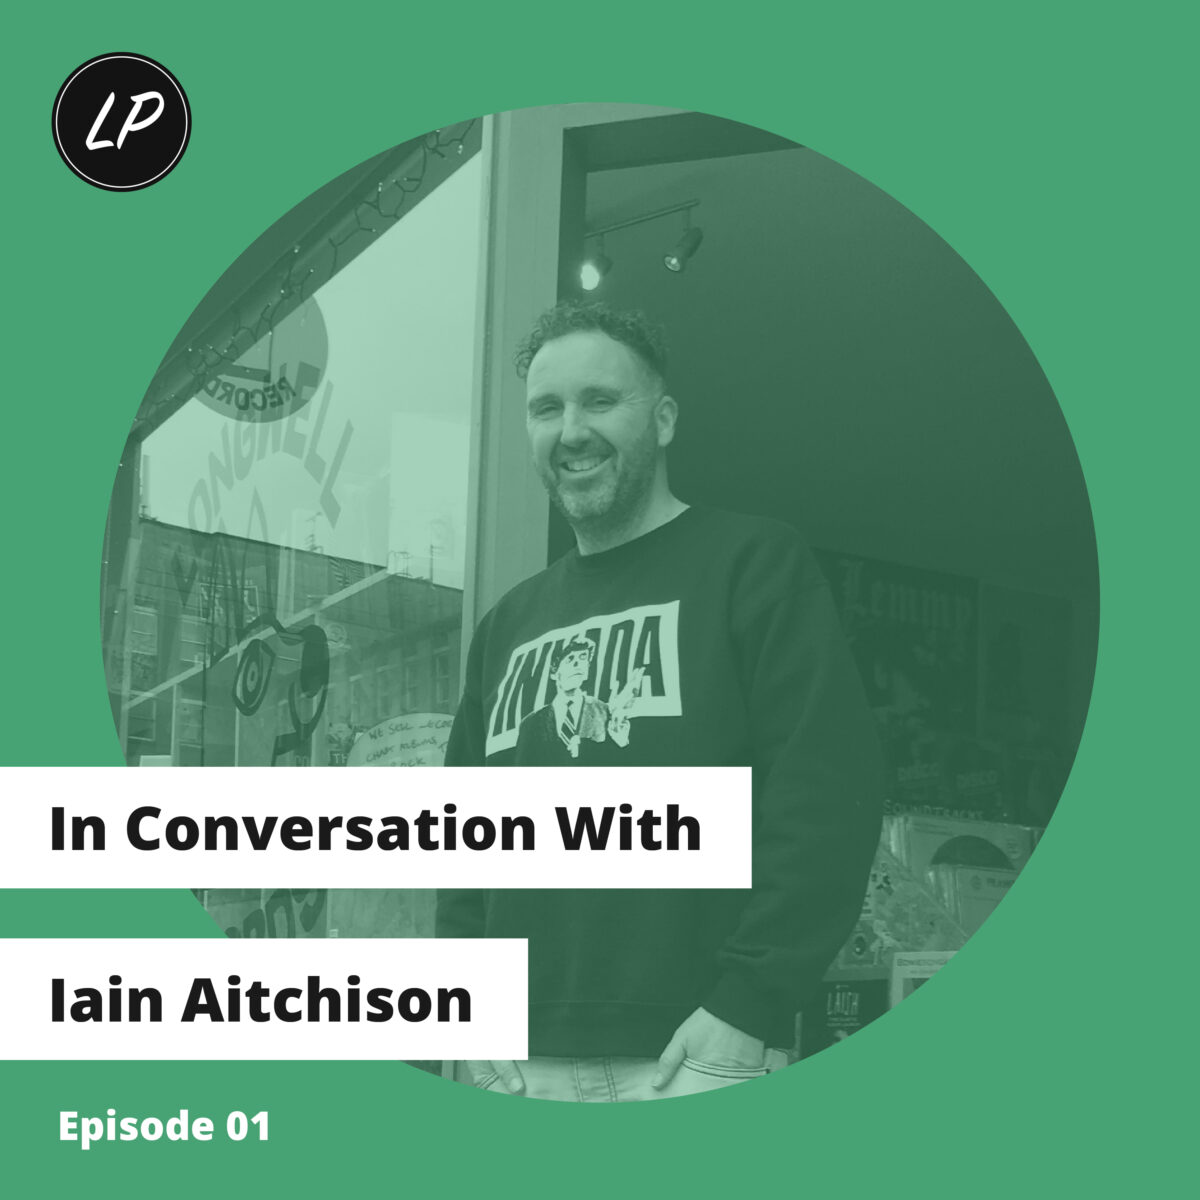 In Conversation With Iain Aitchison (Longwell Records)